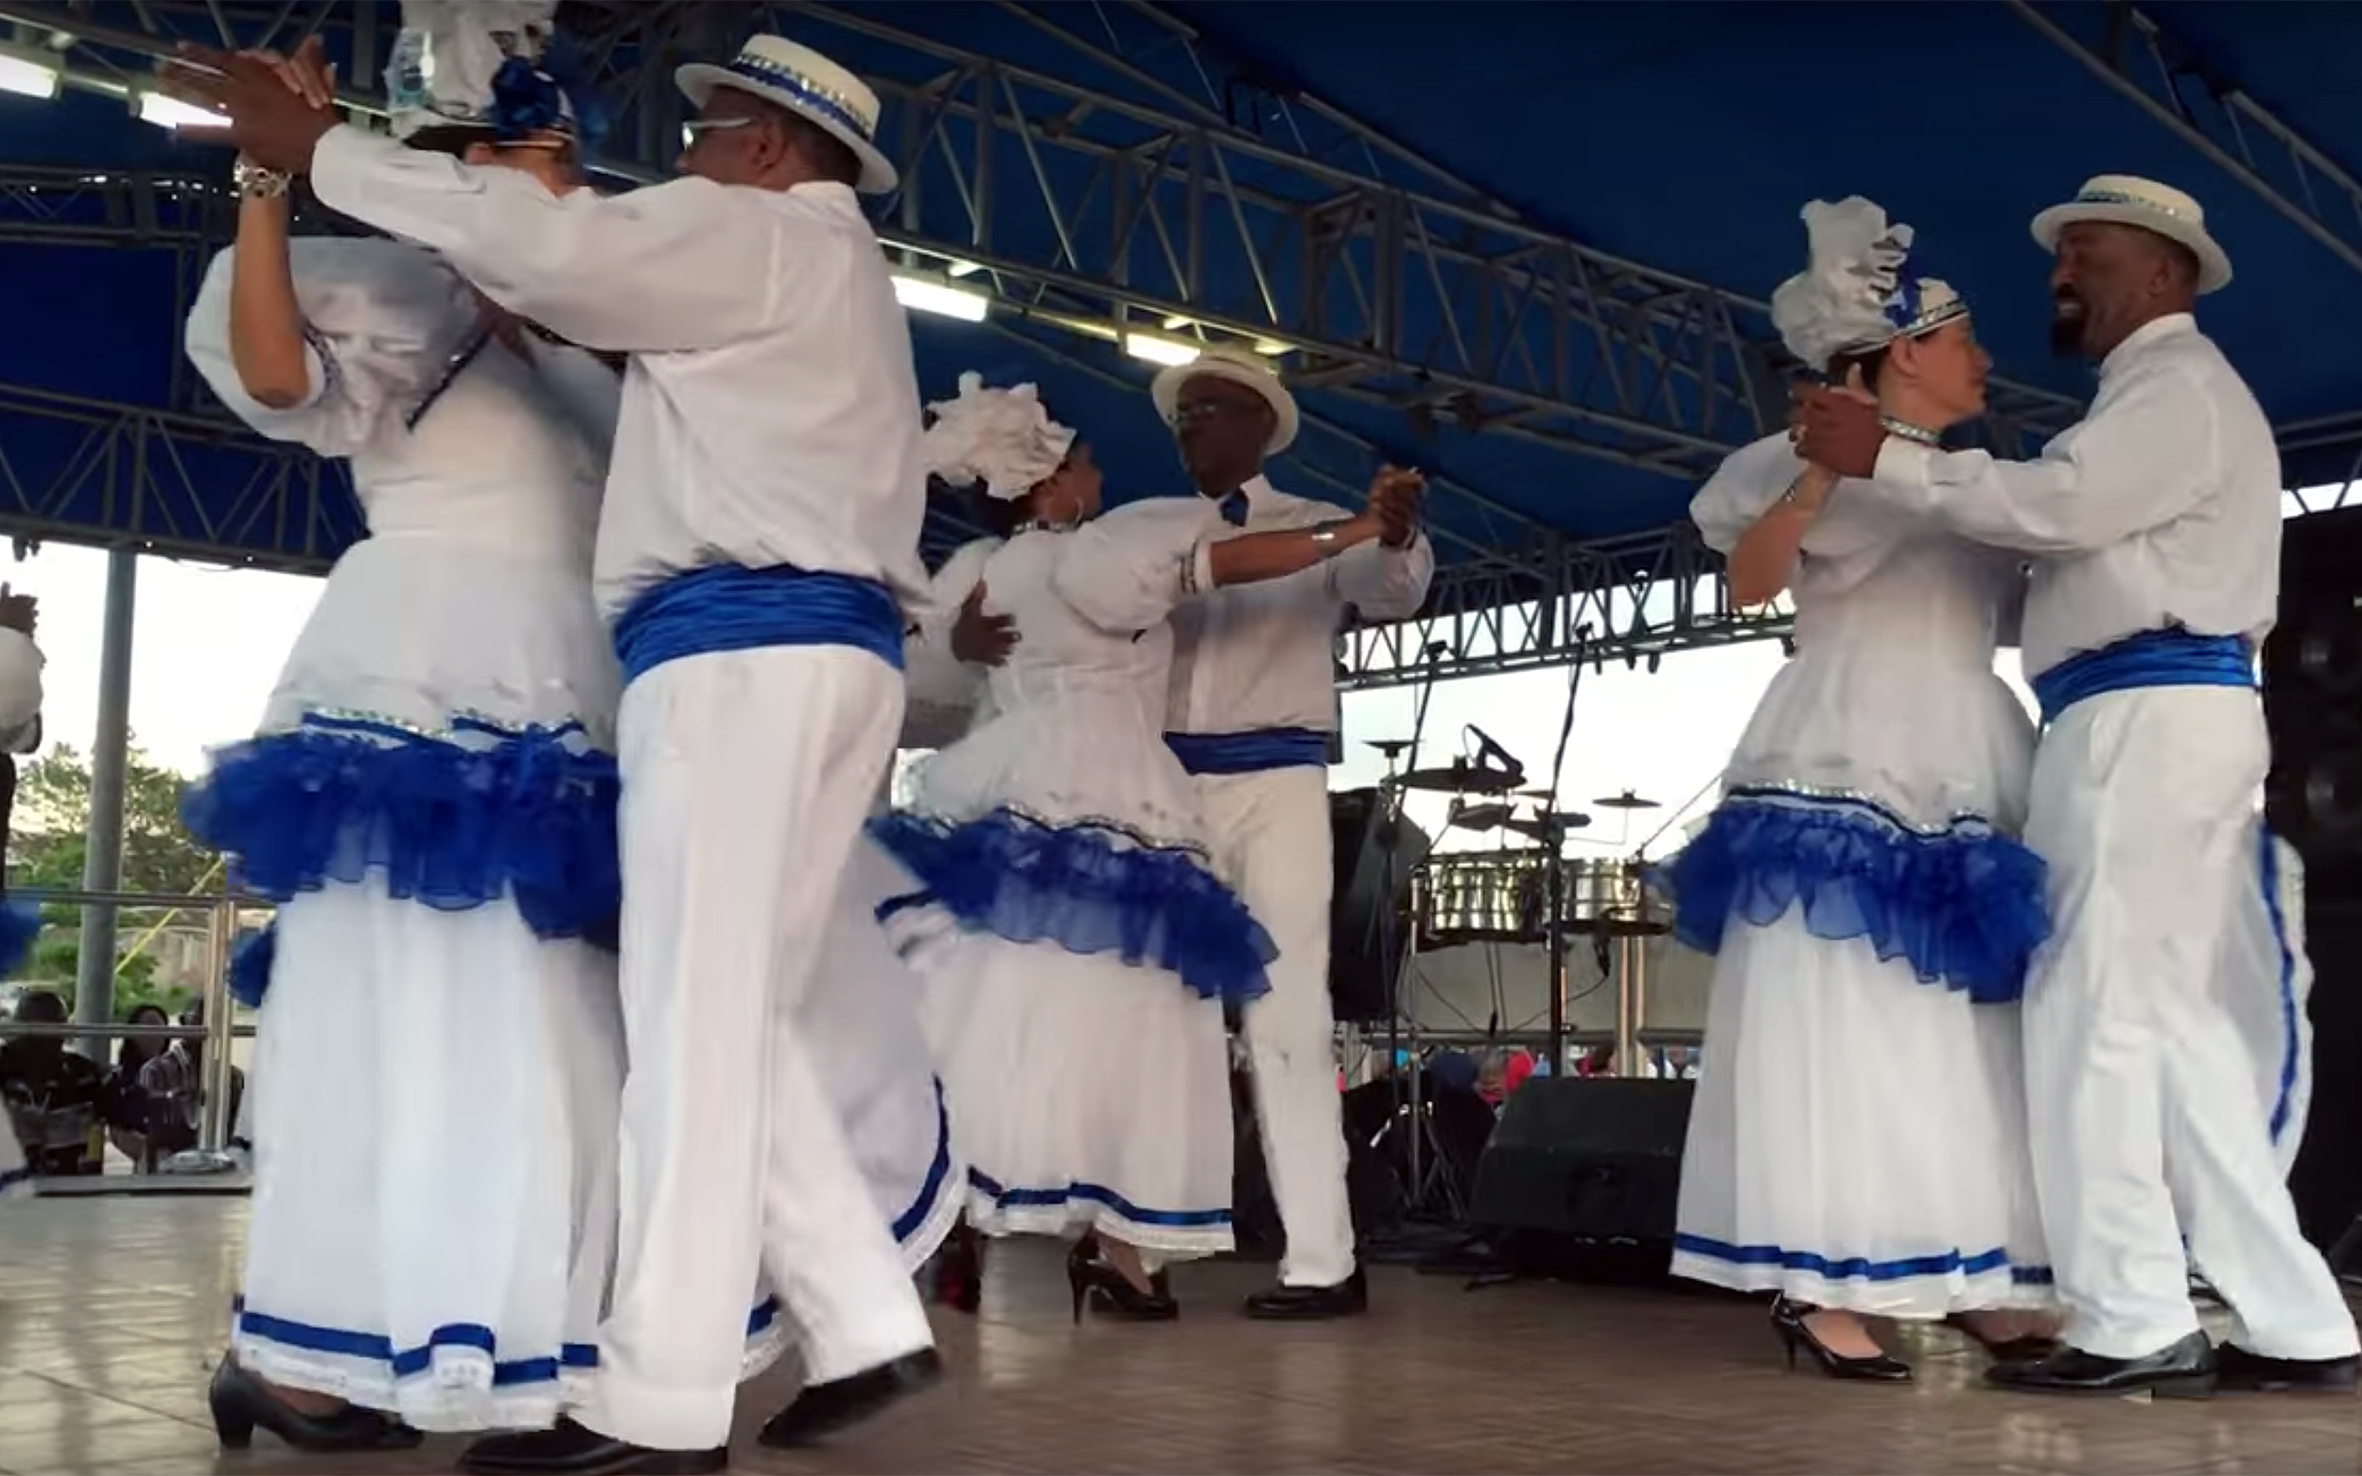 959.Wals Kurasoleño / Curaçao - Wals Kurasoleño is a Curaçaoan Waltz, brought in the first part of the 19th century by the Dutch colonists to the island of Curaçao. First it was meant as a societal dance with slaves just looking at it, but soon it spread all around the island and it started to be danced everywhere. With time Africa beats were superimposed on the original rhythm, producing distinctive style in both music and the dance. Wals Kurasoleño is still popular on the island.